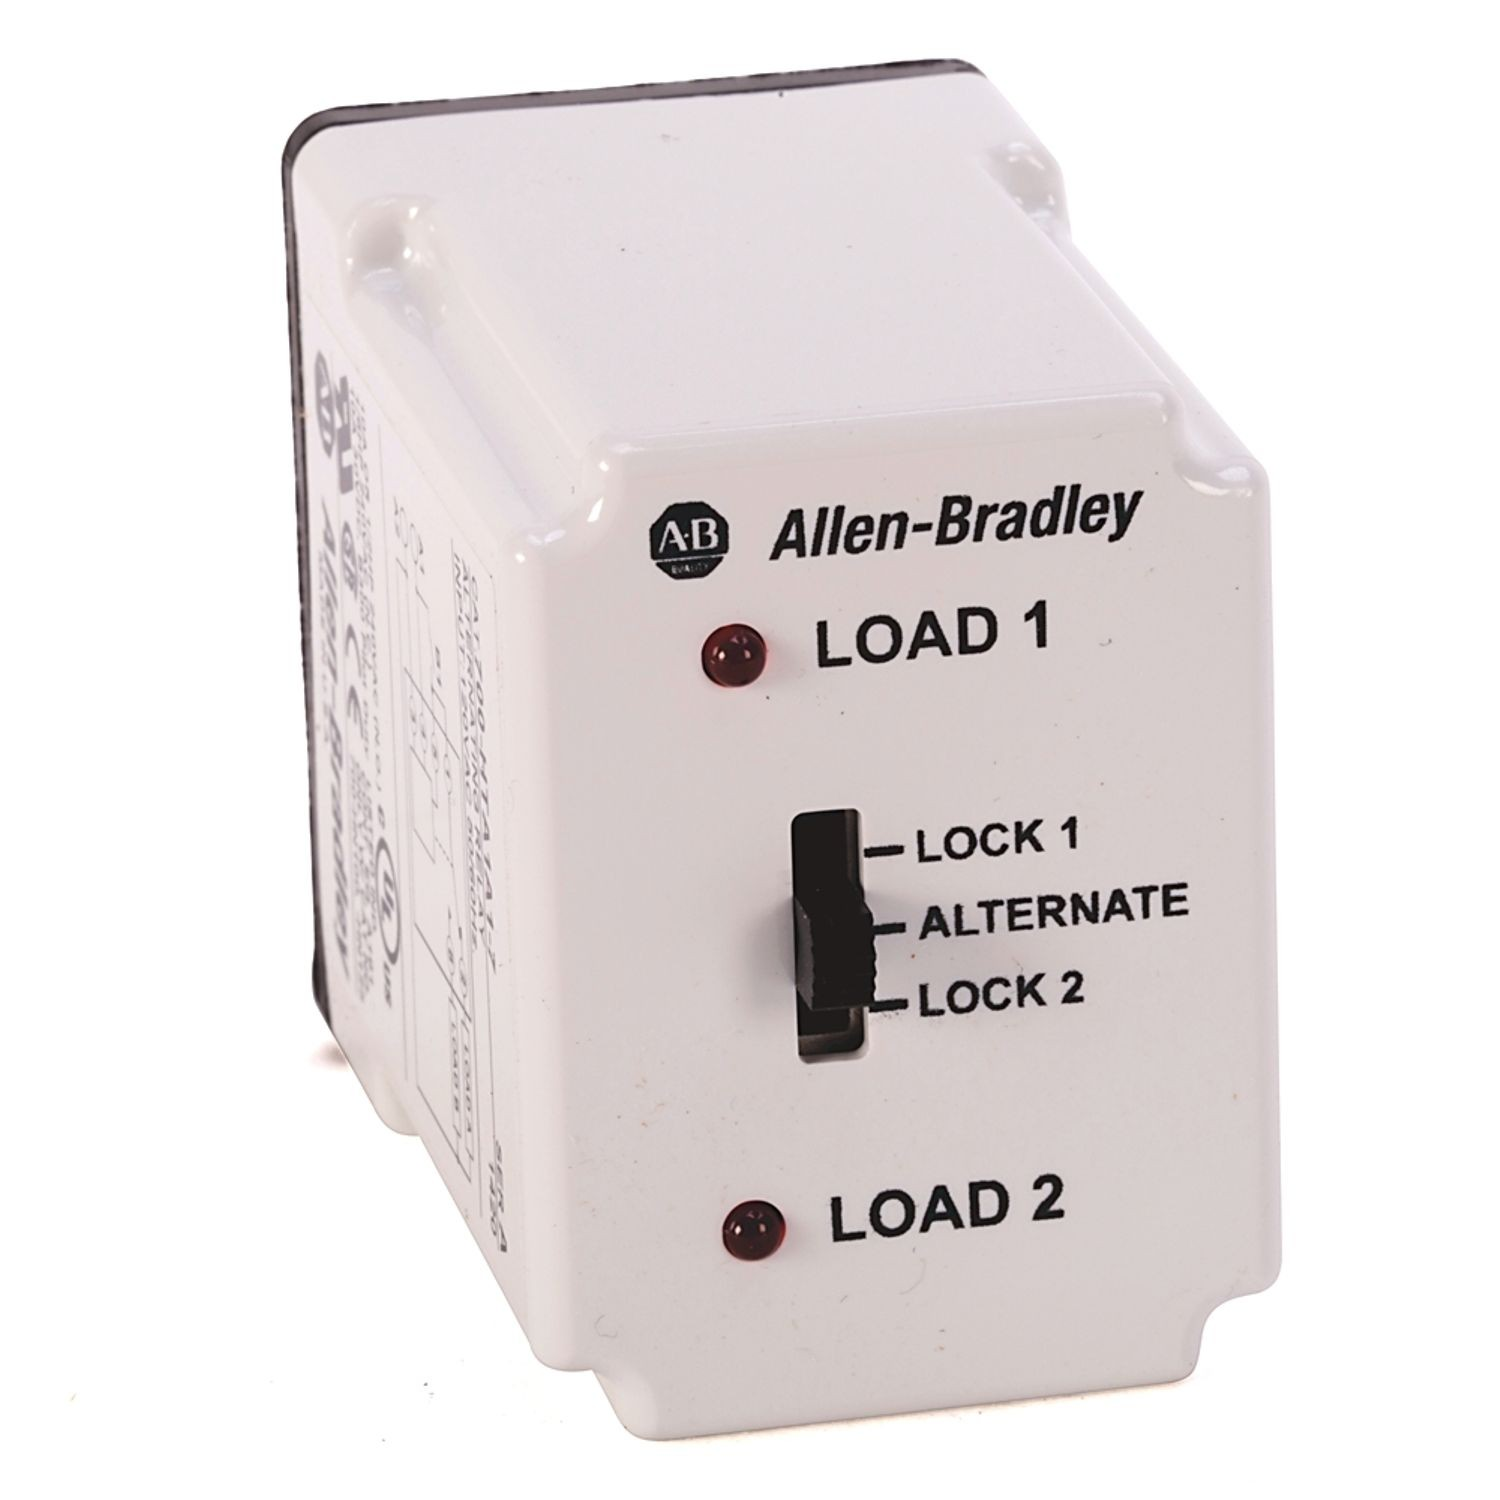 Allen Bradley 700 Hta Alternating Relay Dpdt Cross Wired 3 Electrical Control Switch 120v Ac W Selector